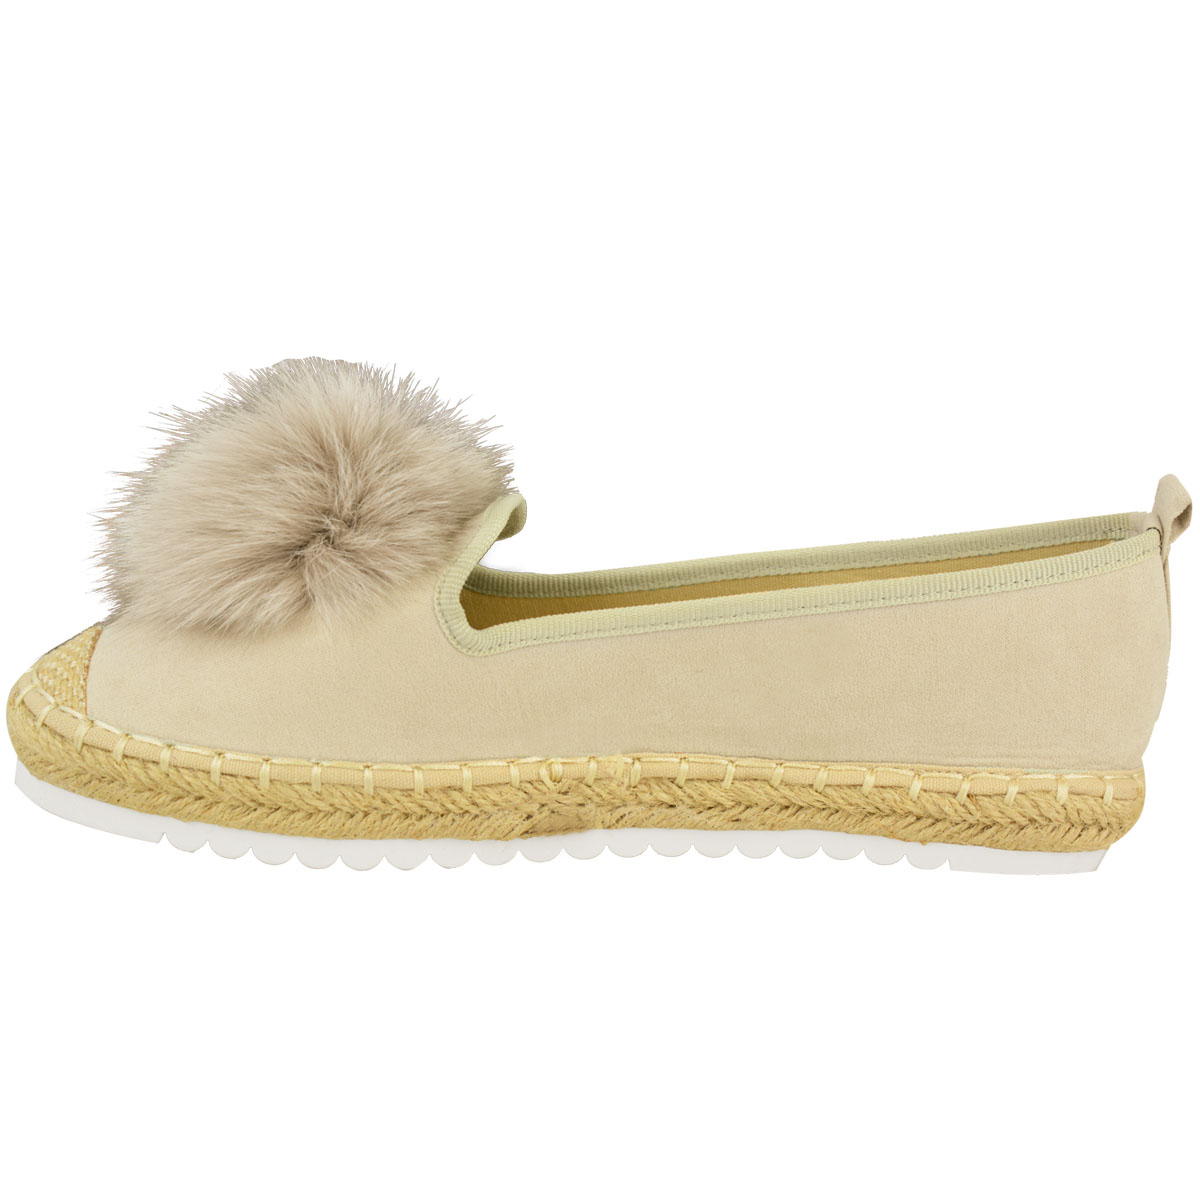 Womens-Ladies-Espadrilles-Flat-Pom-Pom-Sandals-Slip-On-Strappy-Comfy-Size-Shoes thumbnail 32